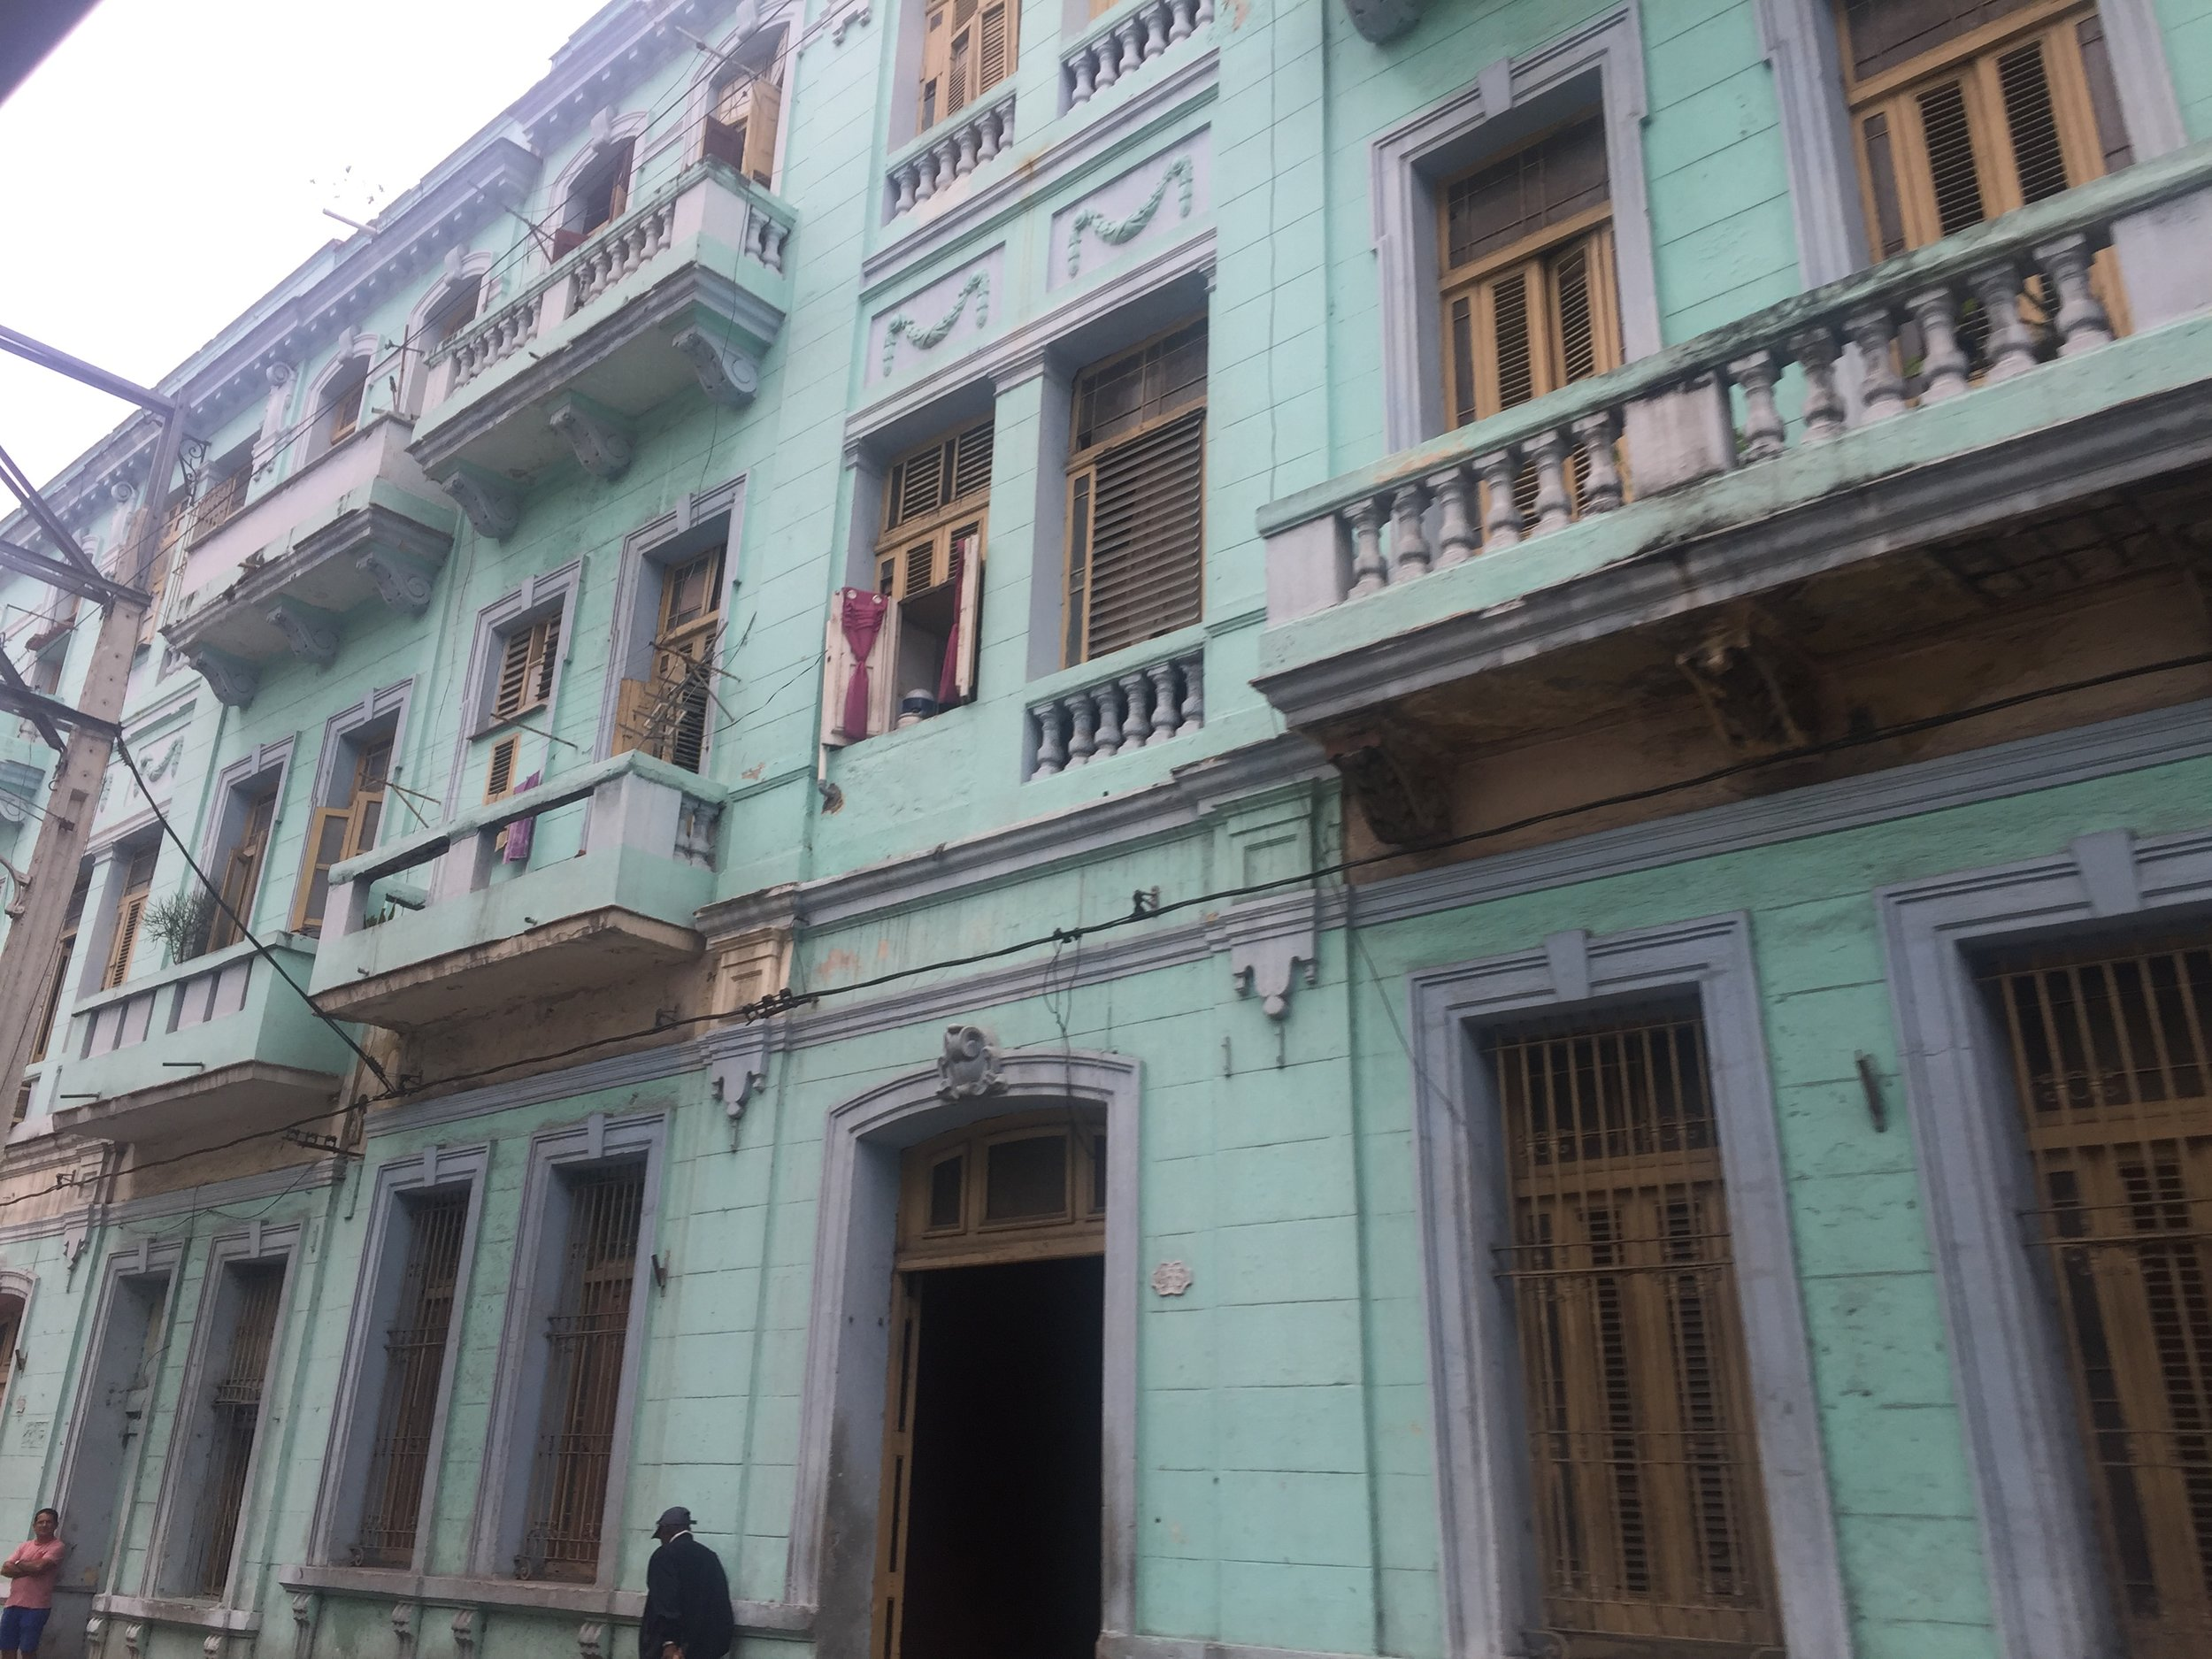 Light teal apartment building in Havana, Cuba